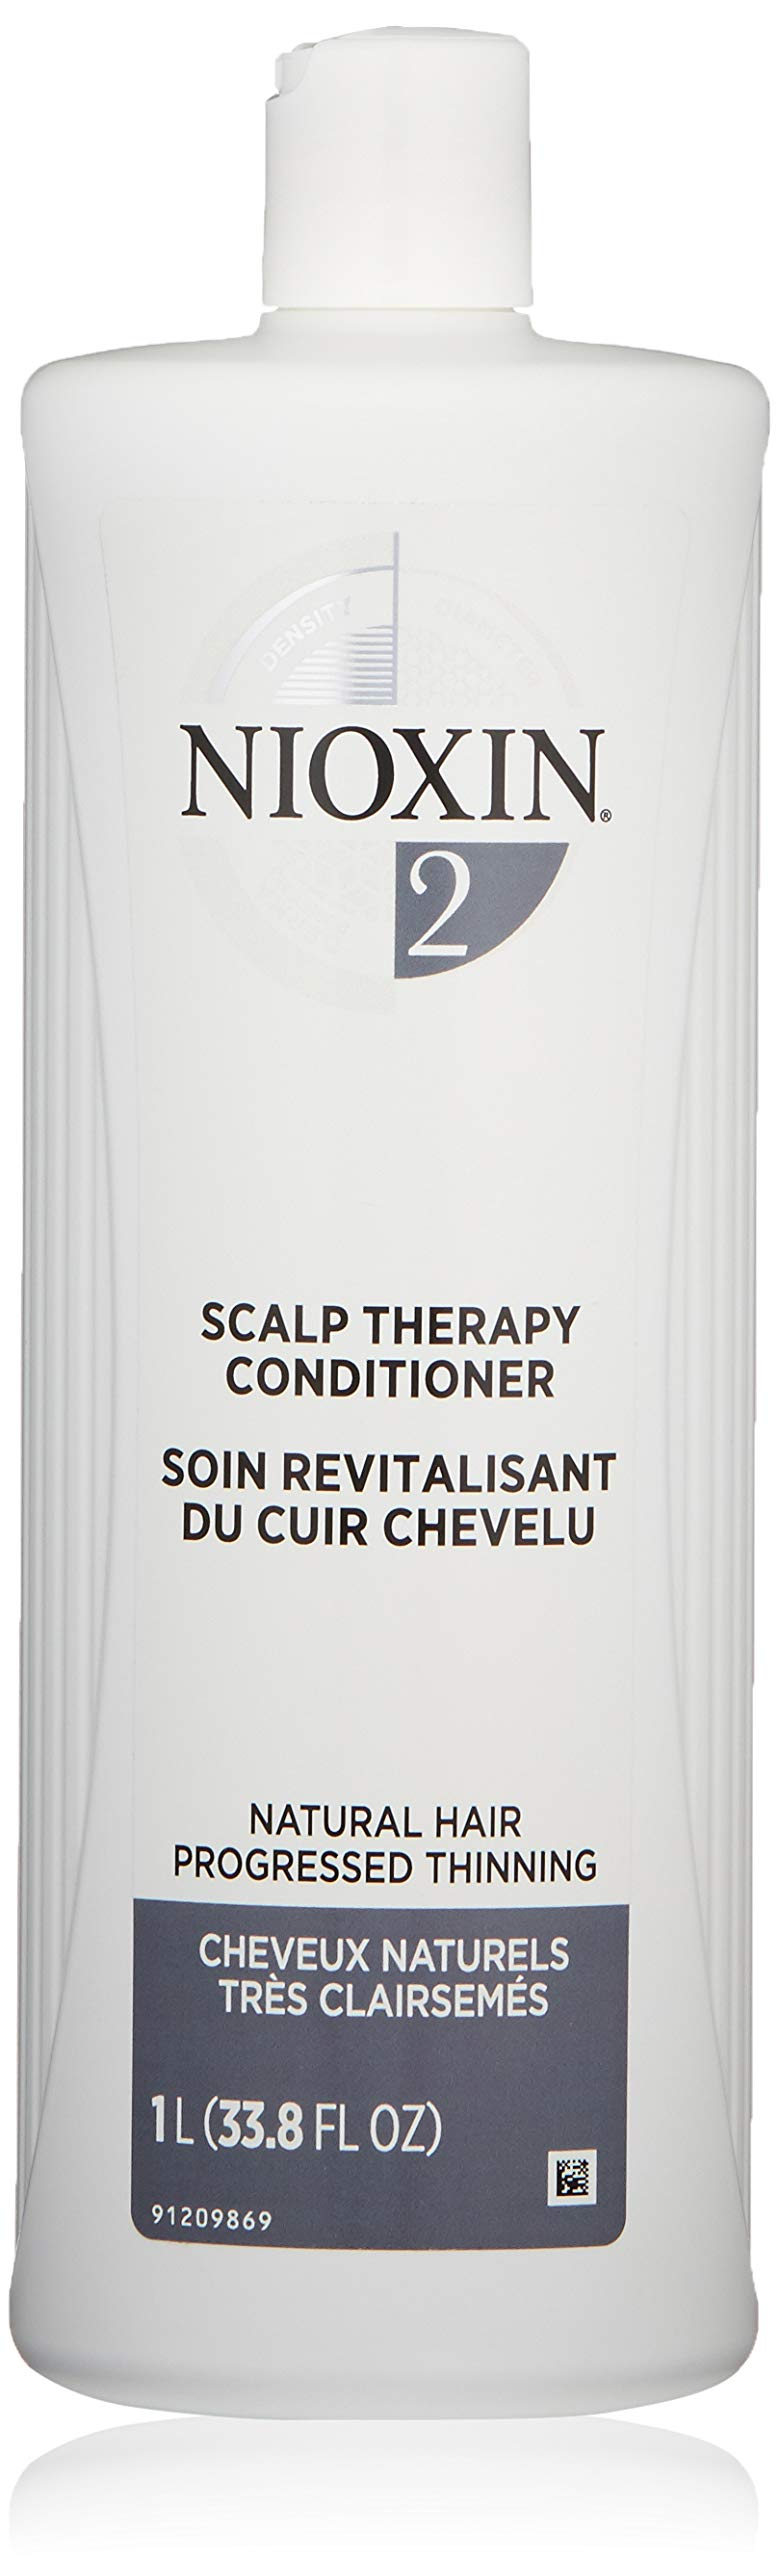 Nioxin System 2 Scalp Therapy Conditioner, 33.8 Oz. by Nioxin